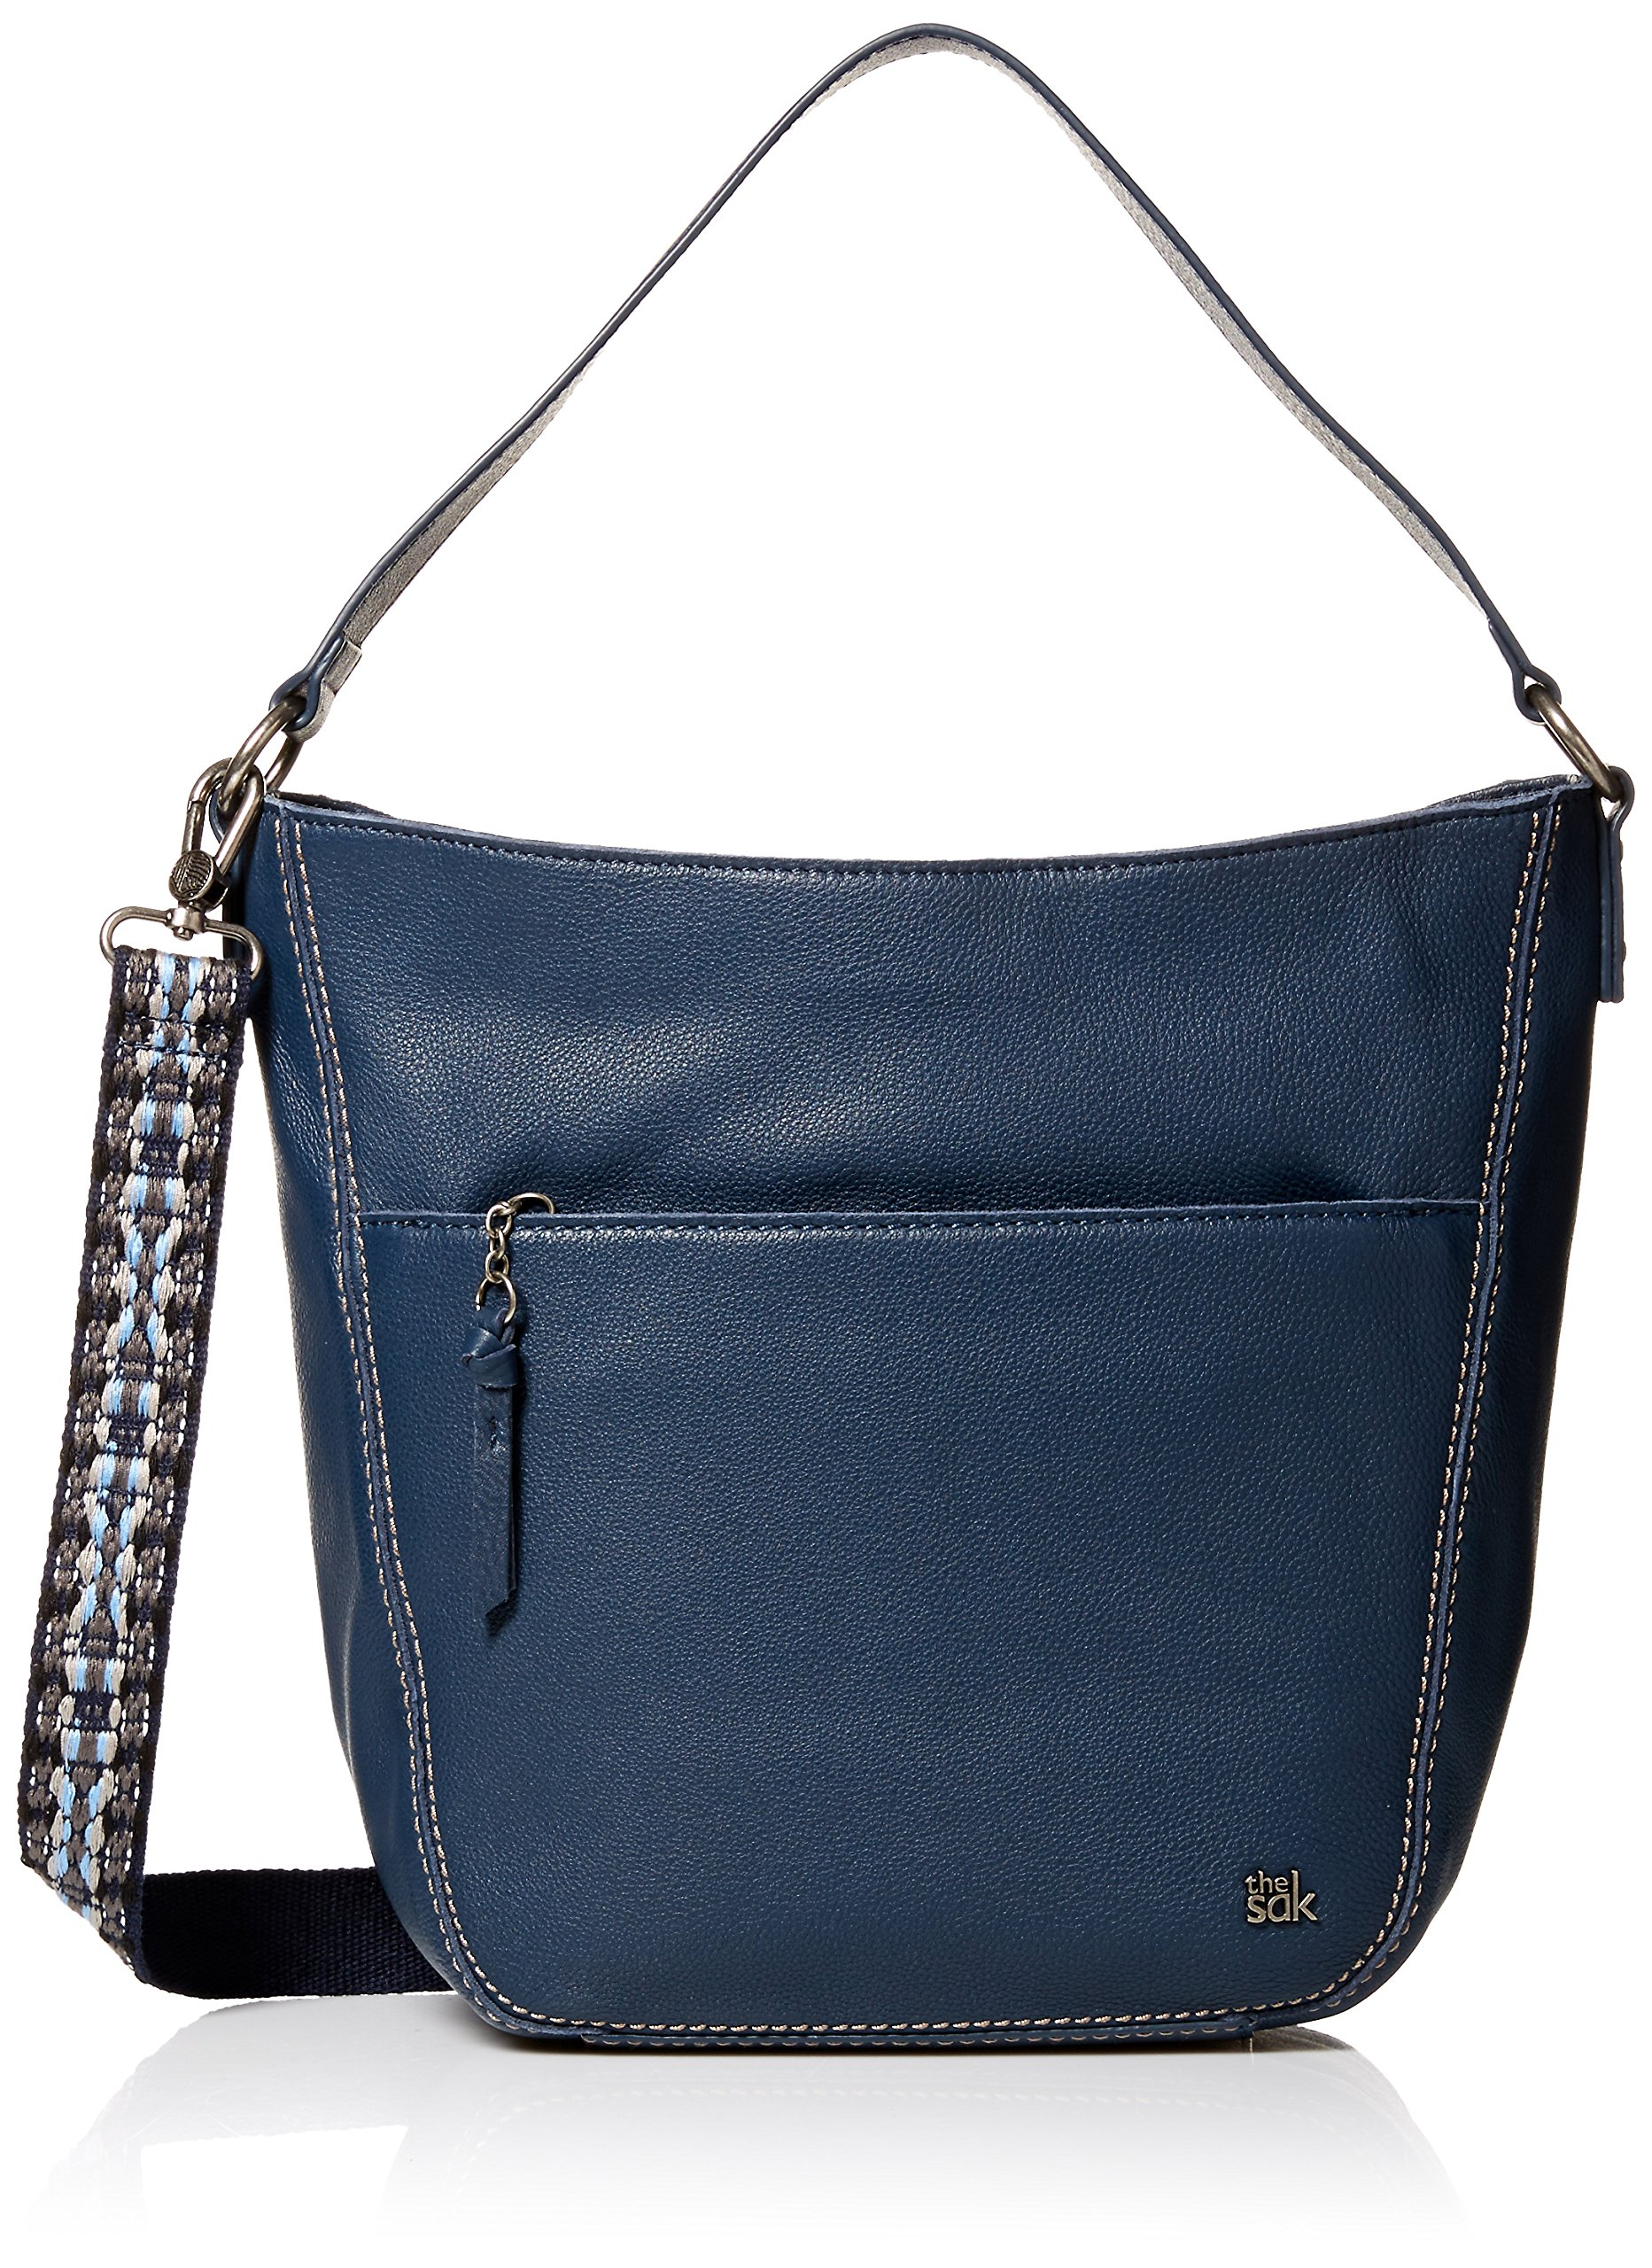 The Sak The Cole Valley Hobo Bag, indigo by The Sak